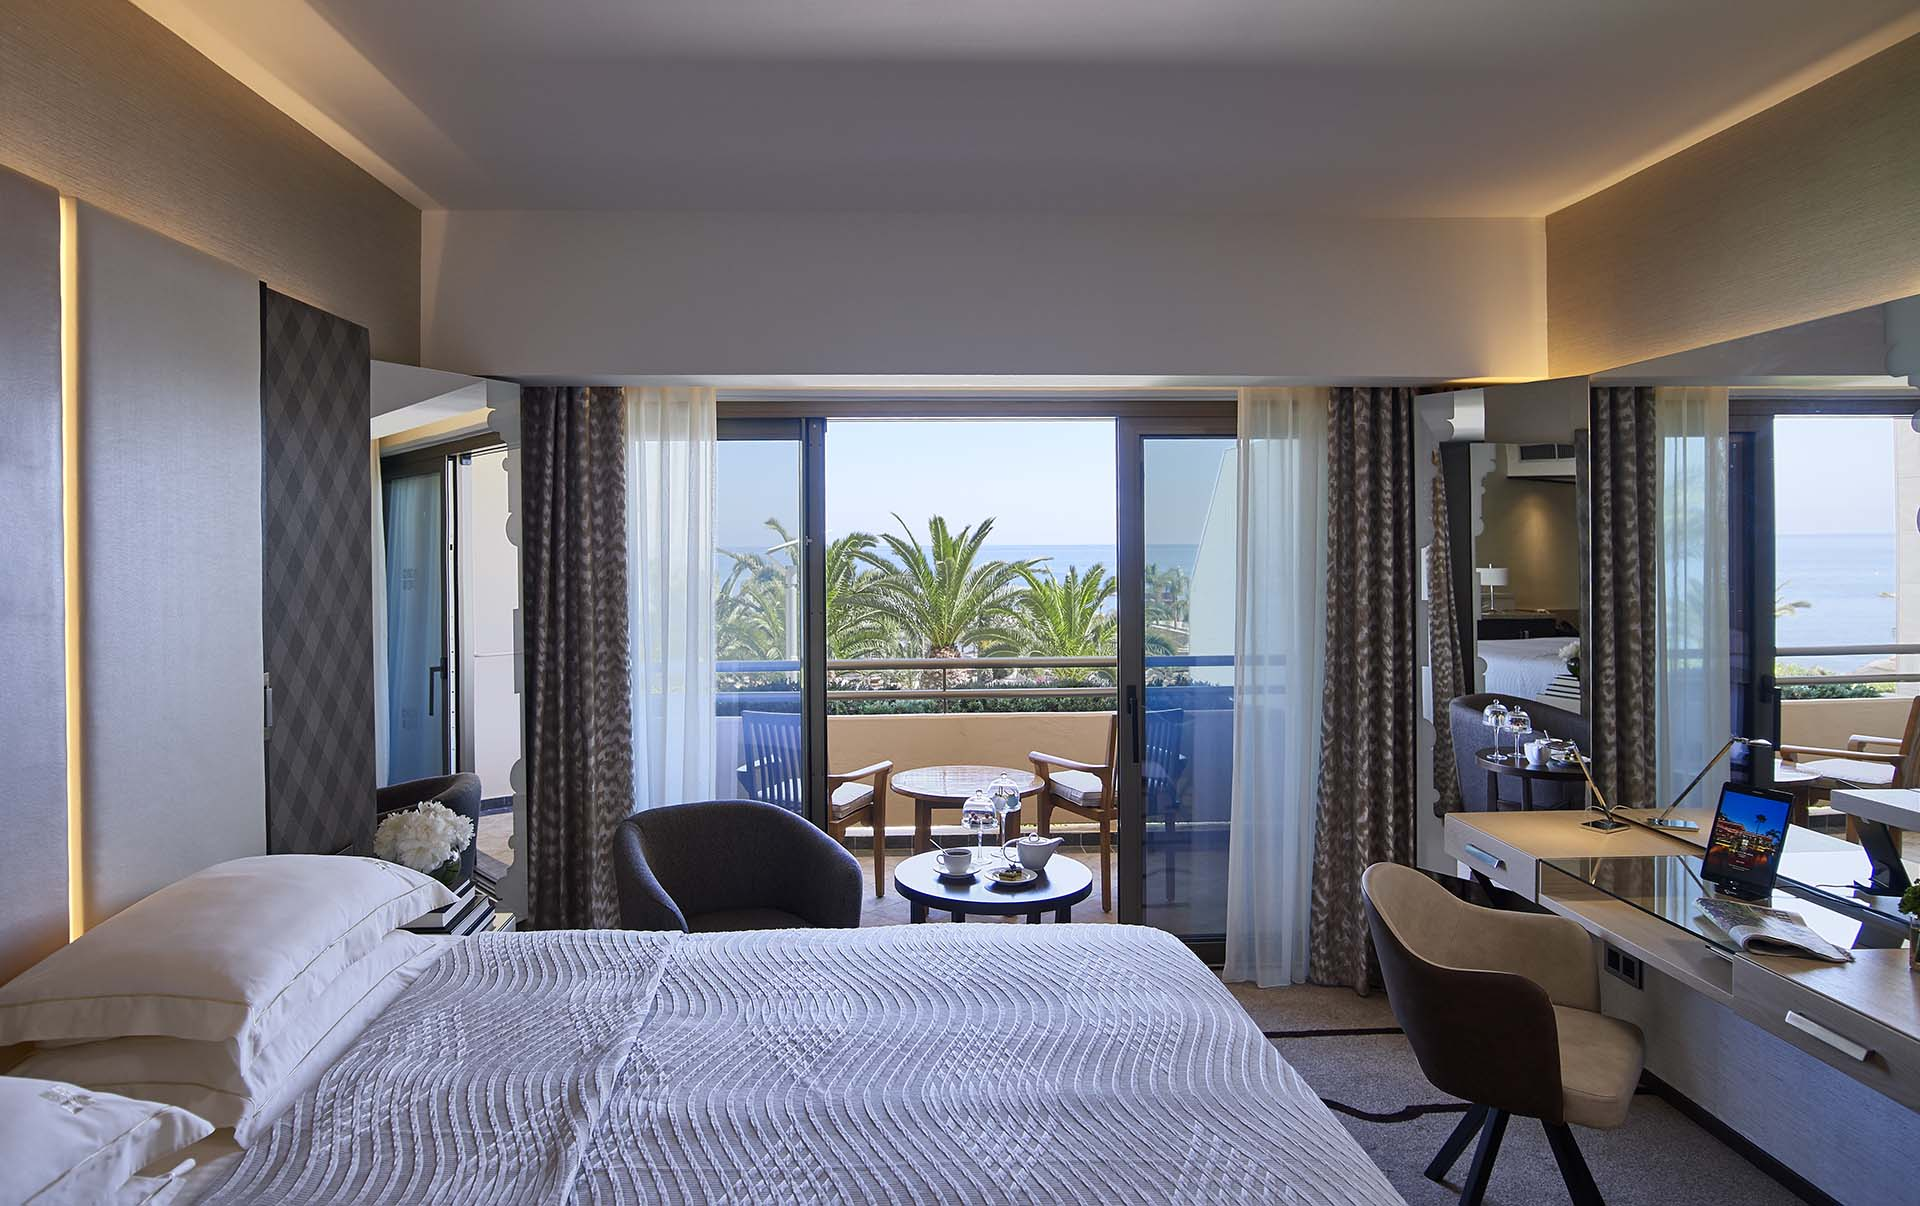 Hotel Rooms and Hotel Suites at Four Seasons Limassol Cyprus